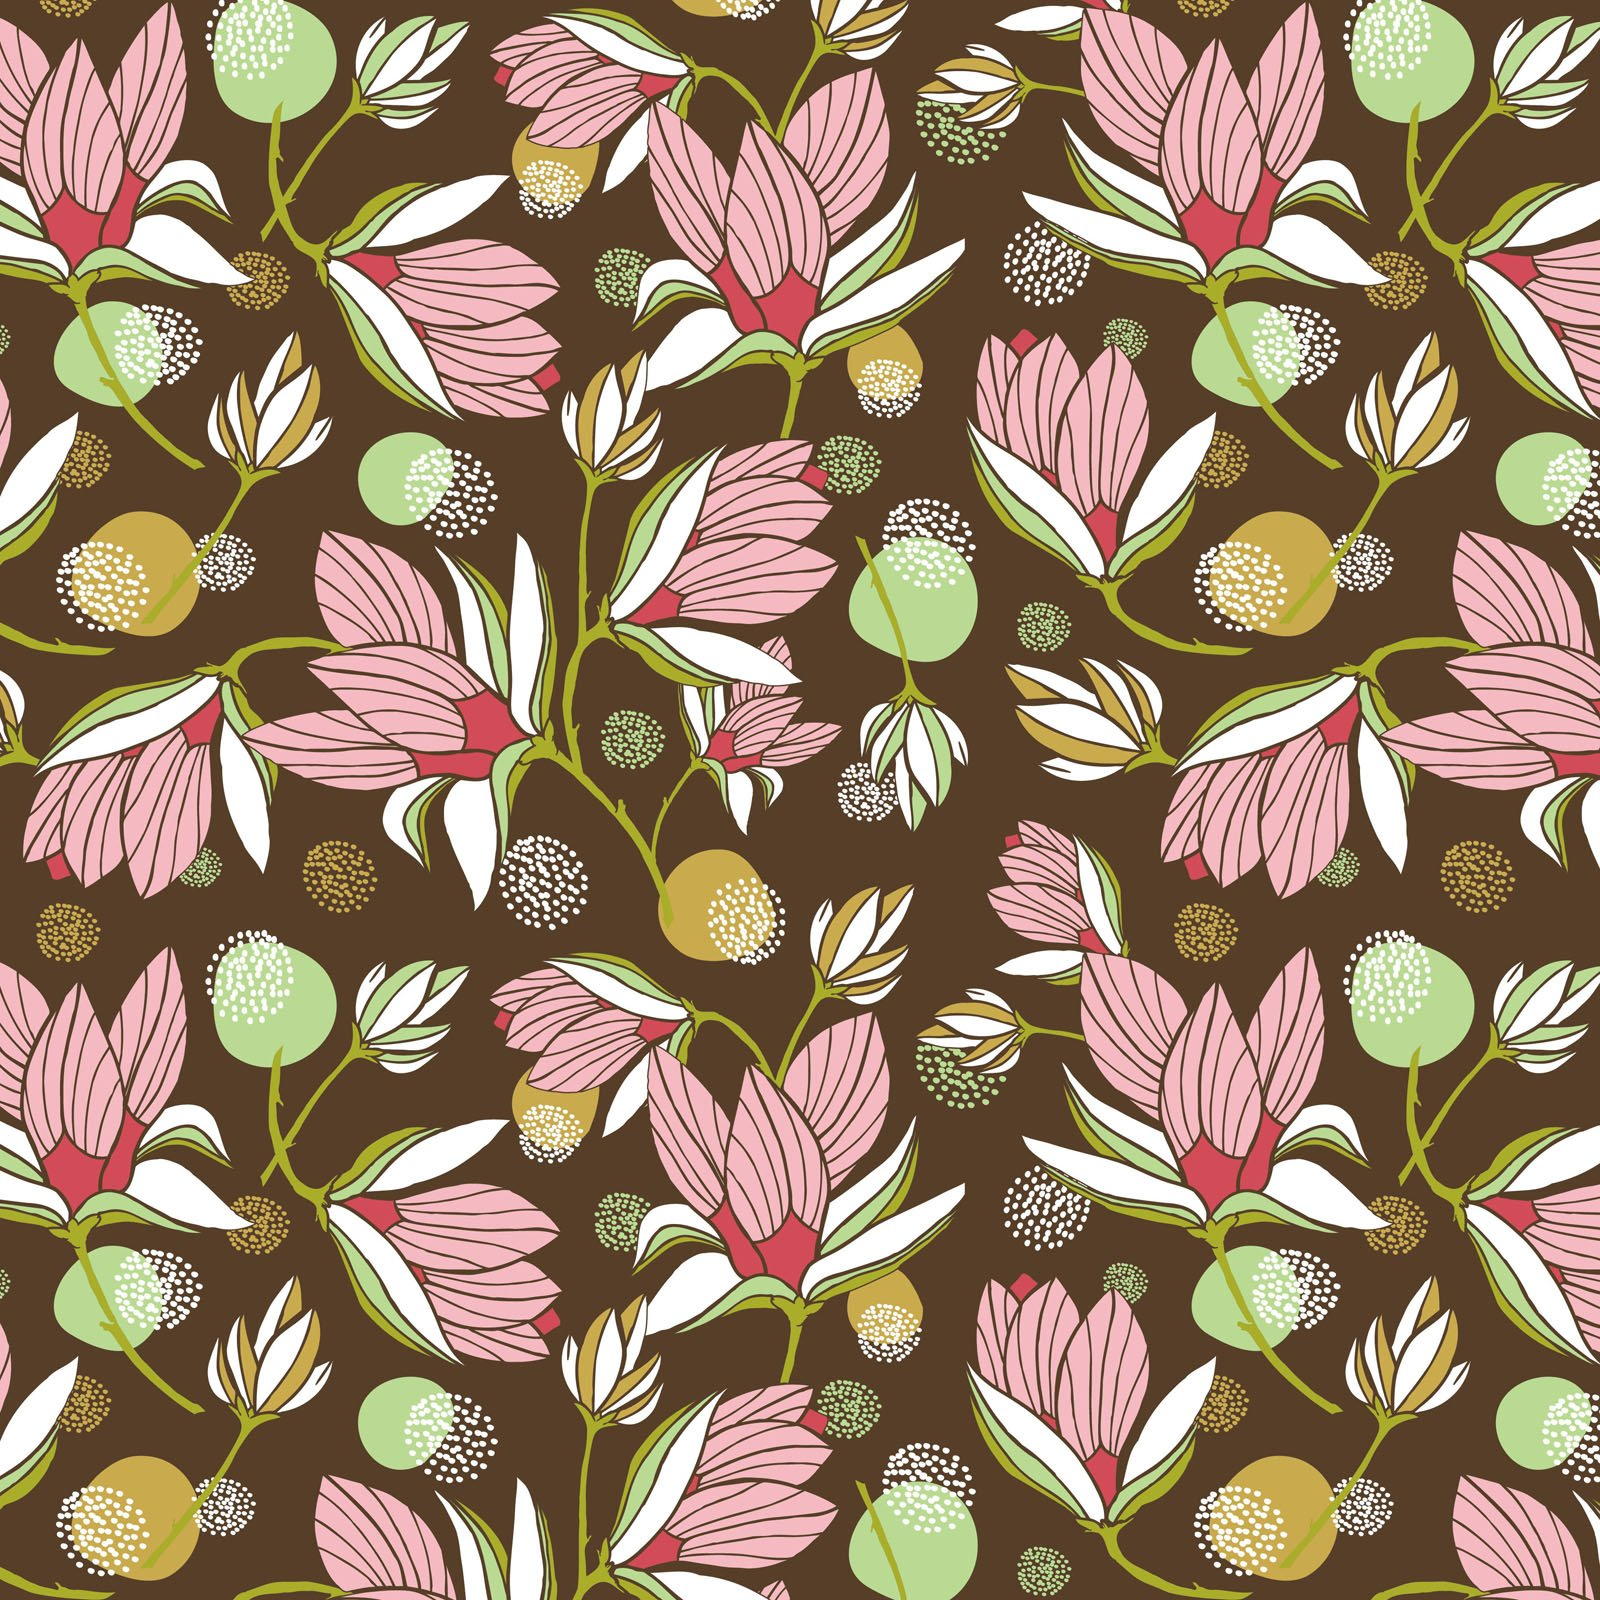 SOUH-4422 MU - SOUTHERN HOSPITALITY BY HANG TIGHT STUDIO MAGNOLIA BLOSSOM MULTI - AVAILABLE TO ORDER